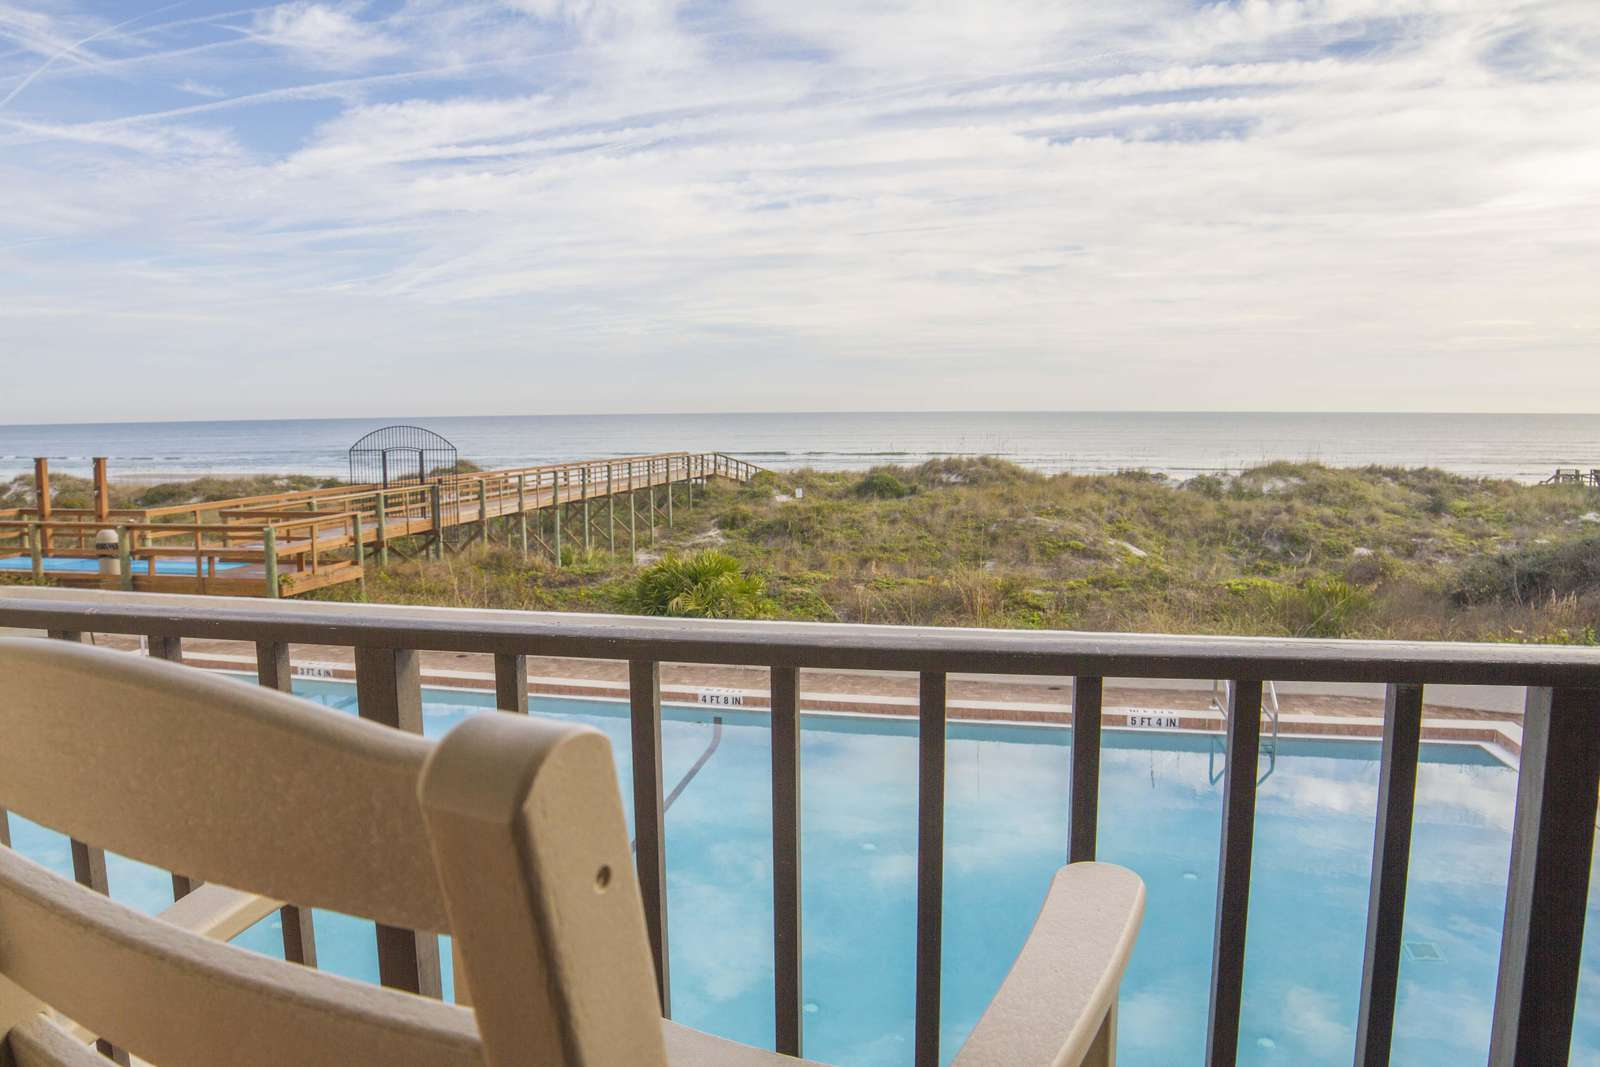 Relax and enjoy the views from your private balcony!